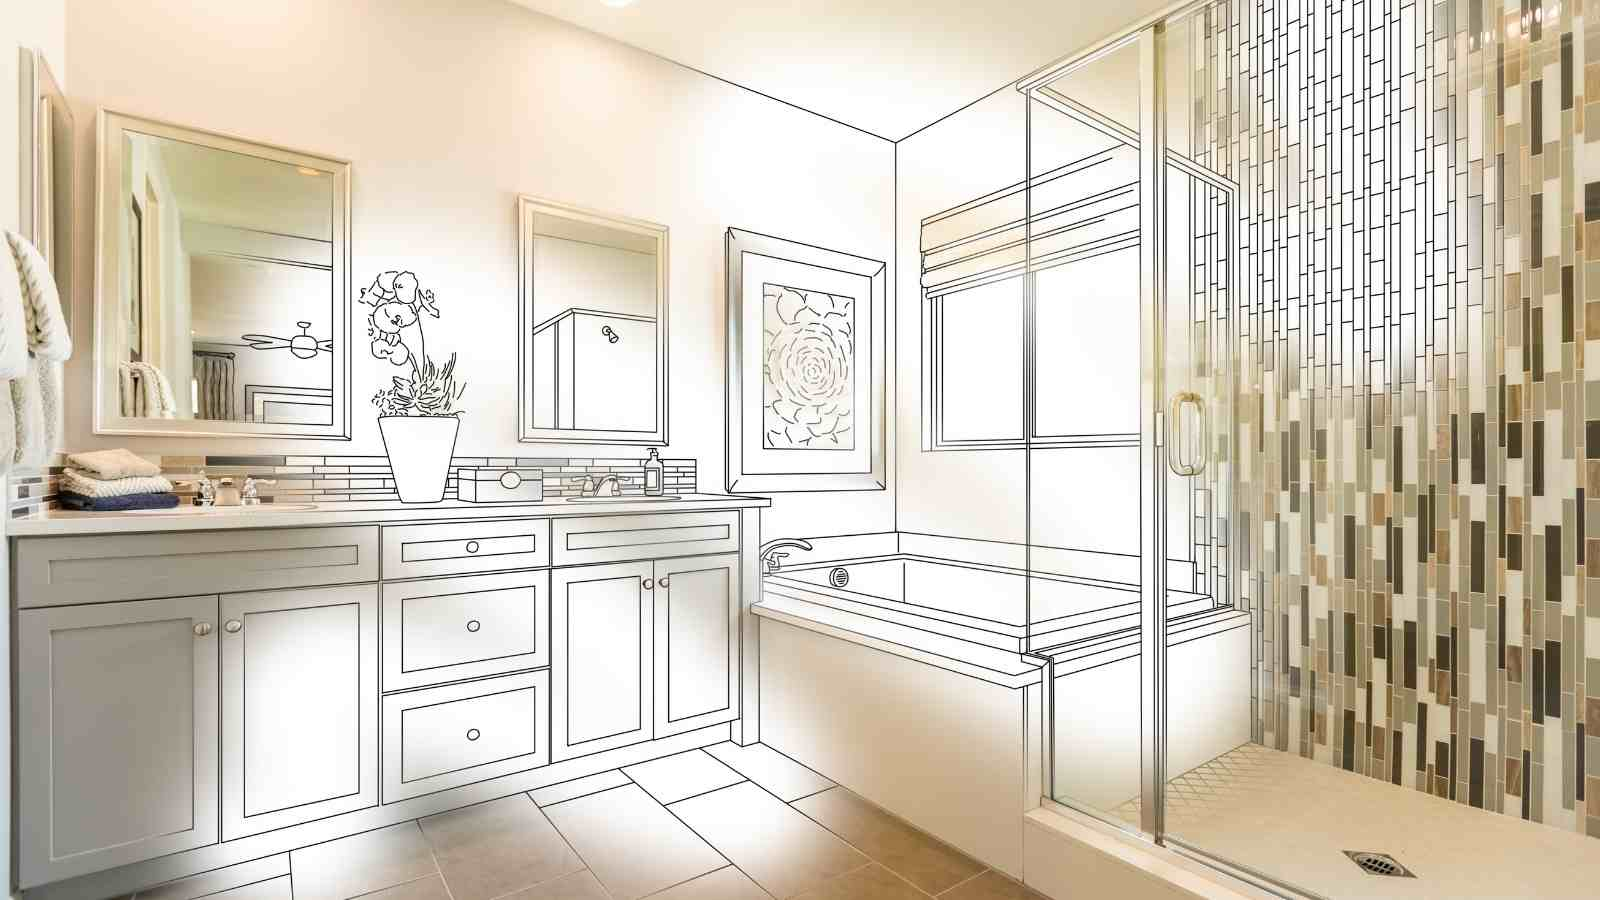 35 amazing bathroom remodel diy ideas that give a stunning for Guest bathroom remodel ideas